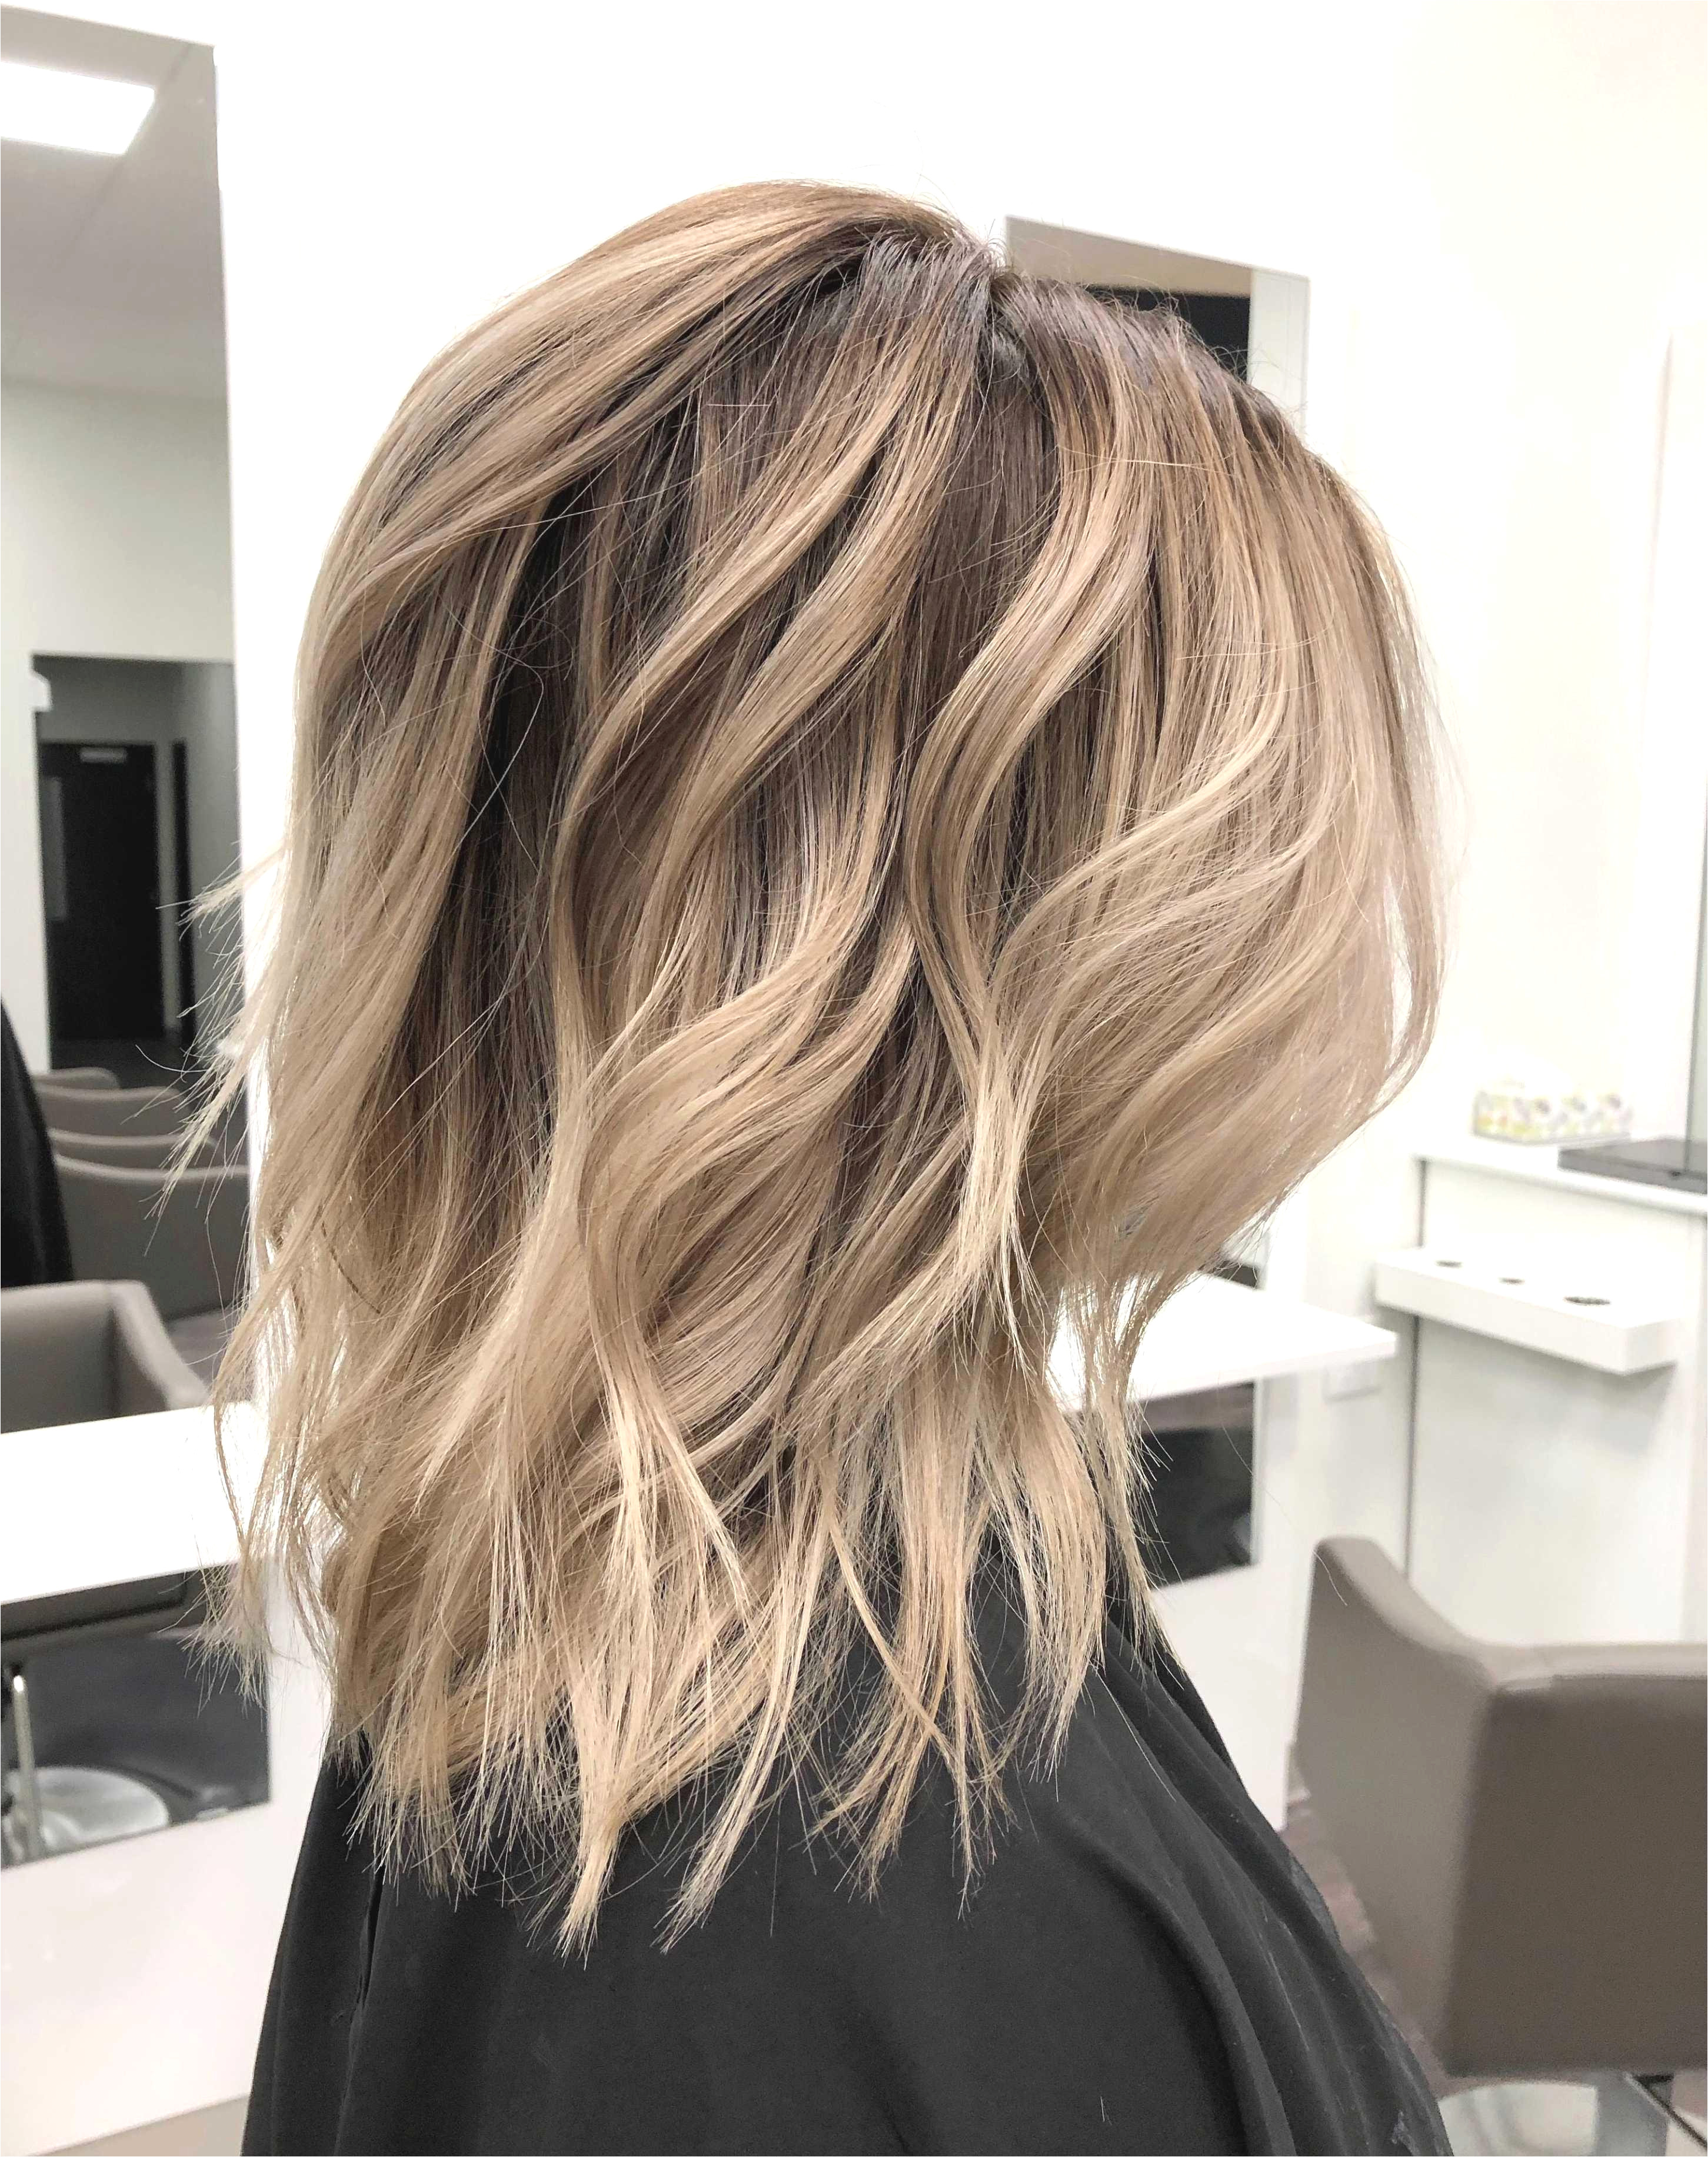 Modern Hairstyles for Long Hair Elegant New New Fashion Haircuts for Long Hair Ideas